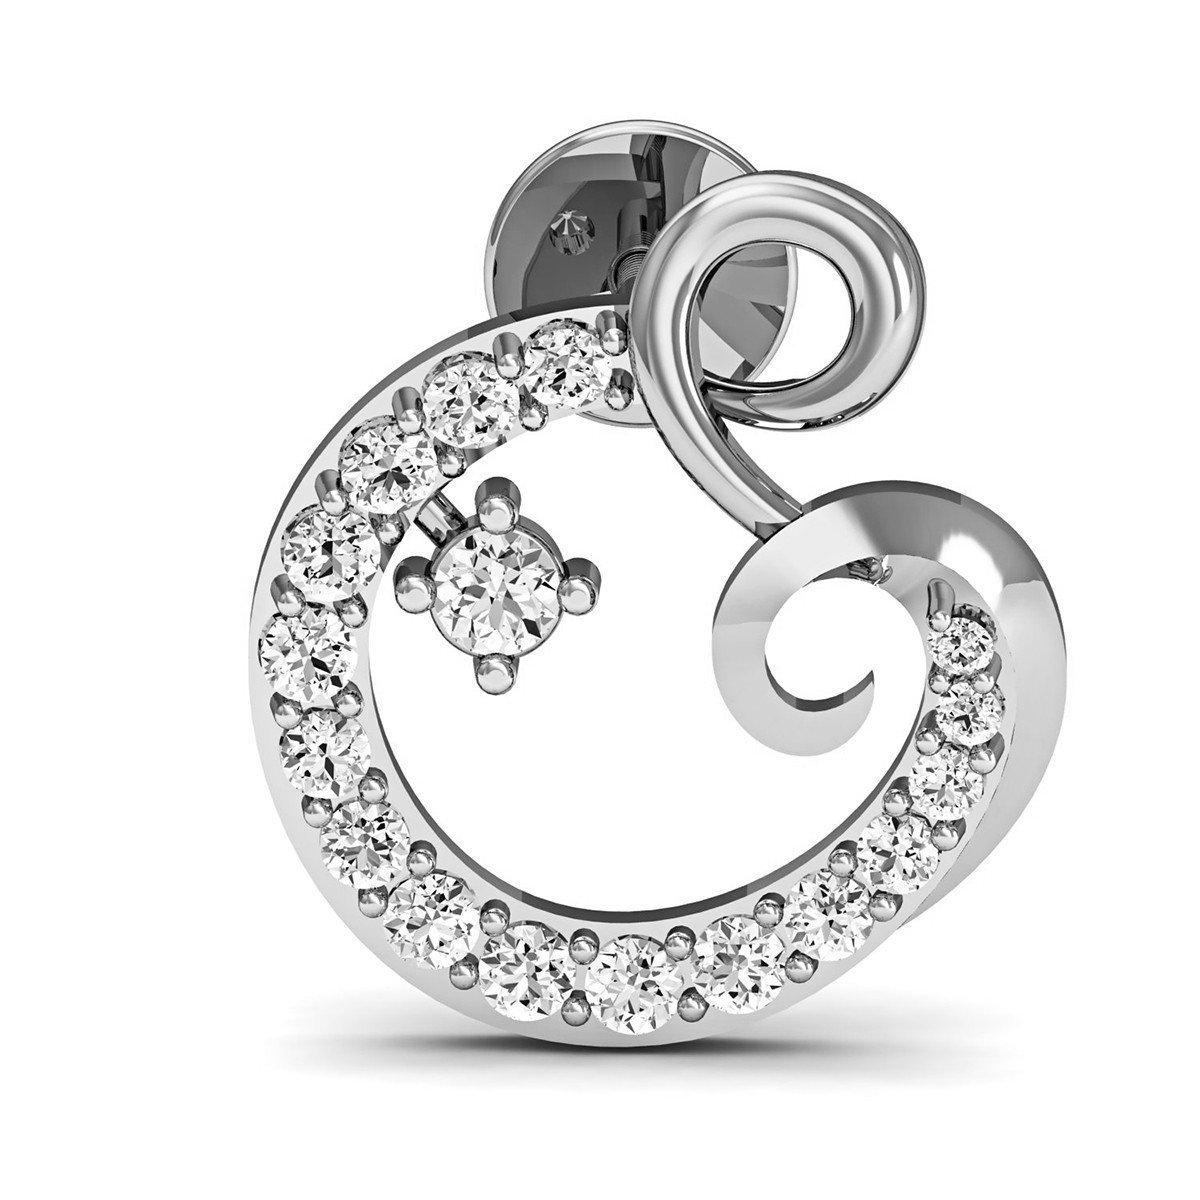 Diamoire Jewels Premium Diamond Pave EarringsInspired by Nature in 14kt White Gold